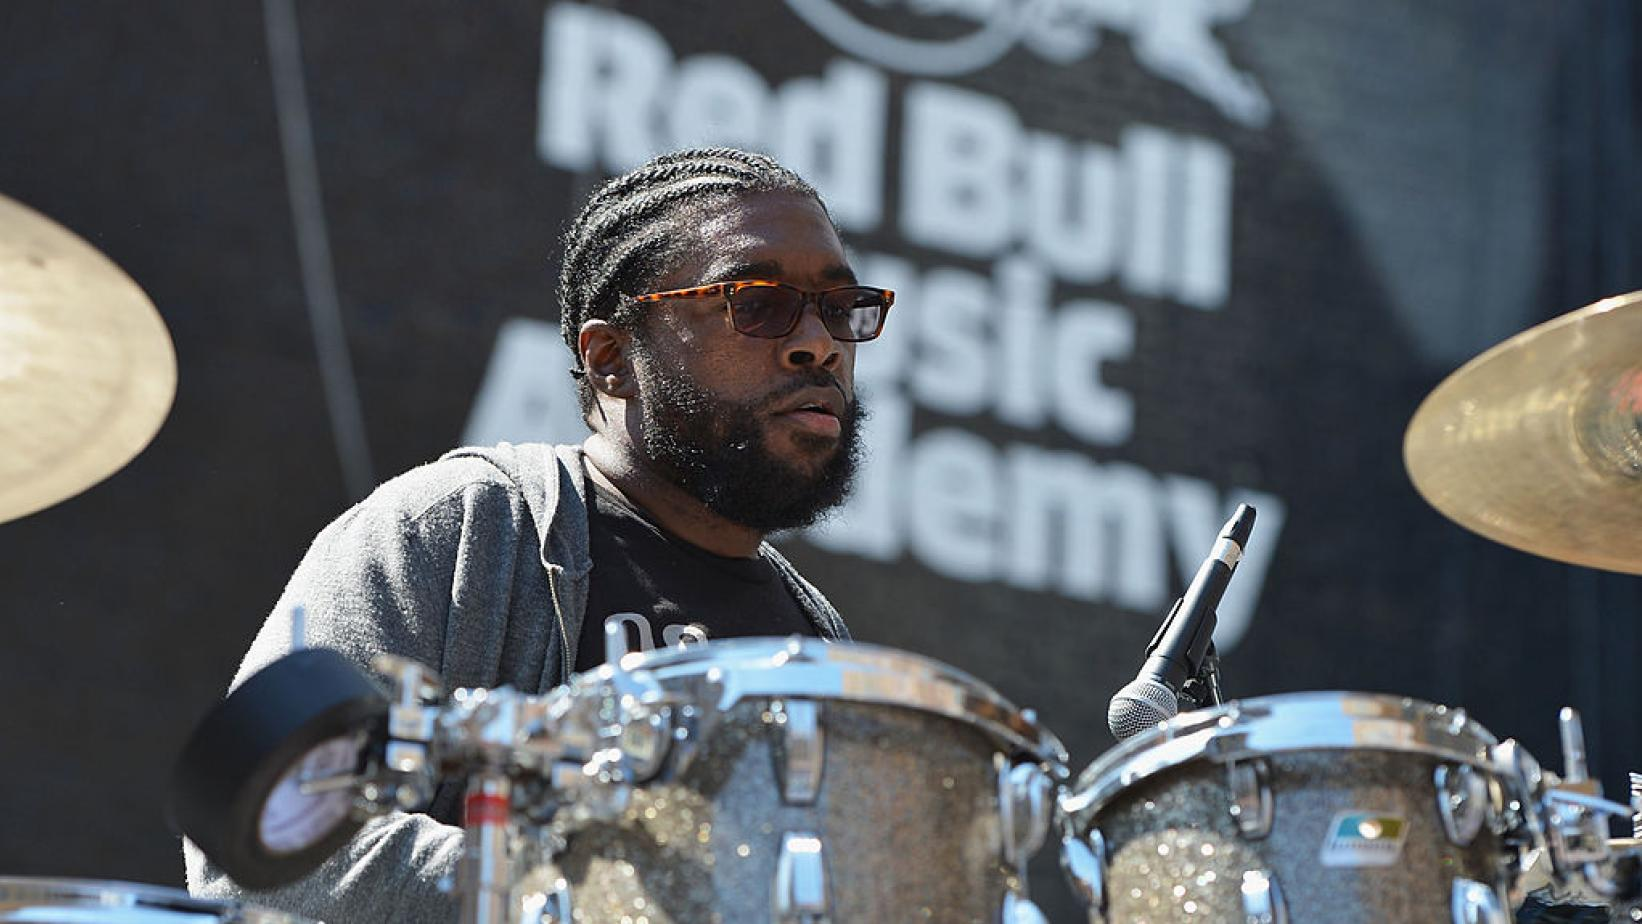 Questlove at Red Bull Music Academy event in 2013